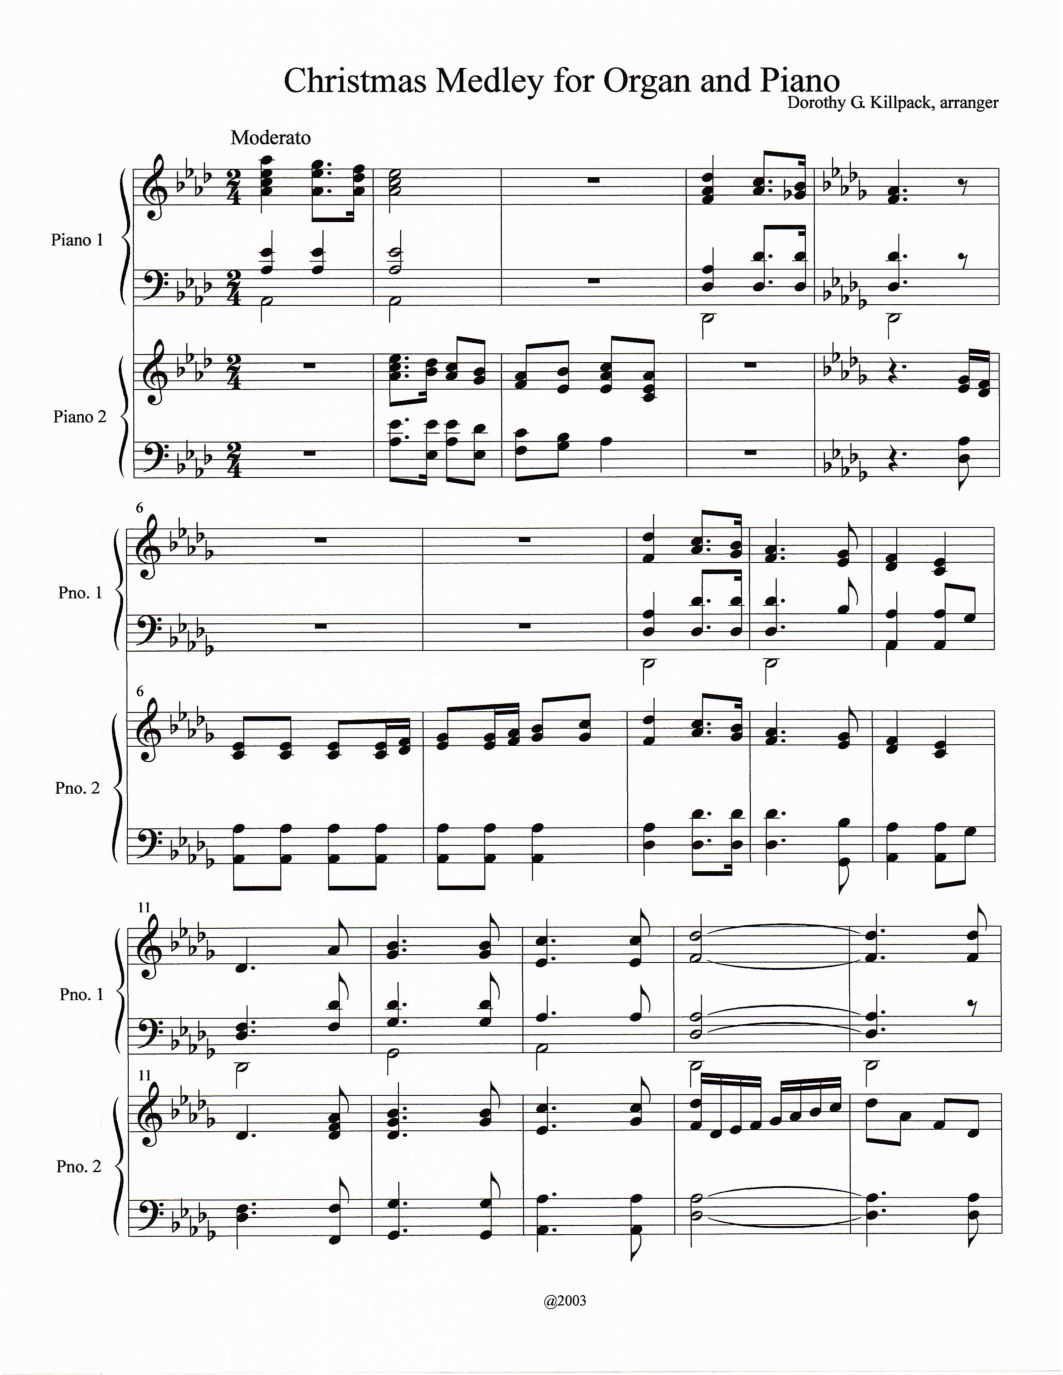 Sheetmusicpicture music pinterest music pictures sheet to the world o little town of bethlehem silent night the first noe by dorothy gregory killpack organorgan accompaniment piano duetpiano ensemble hexwebz Choice Image